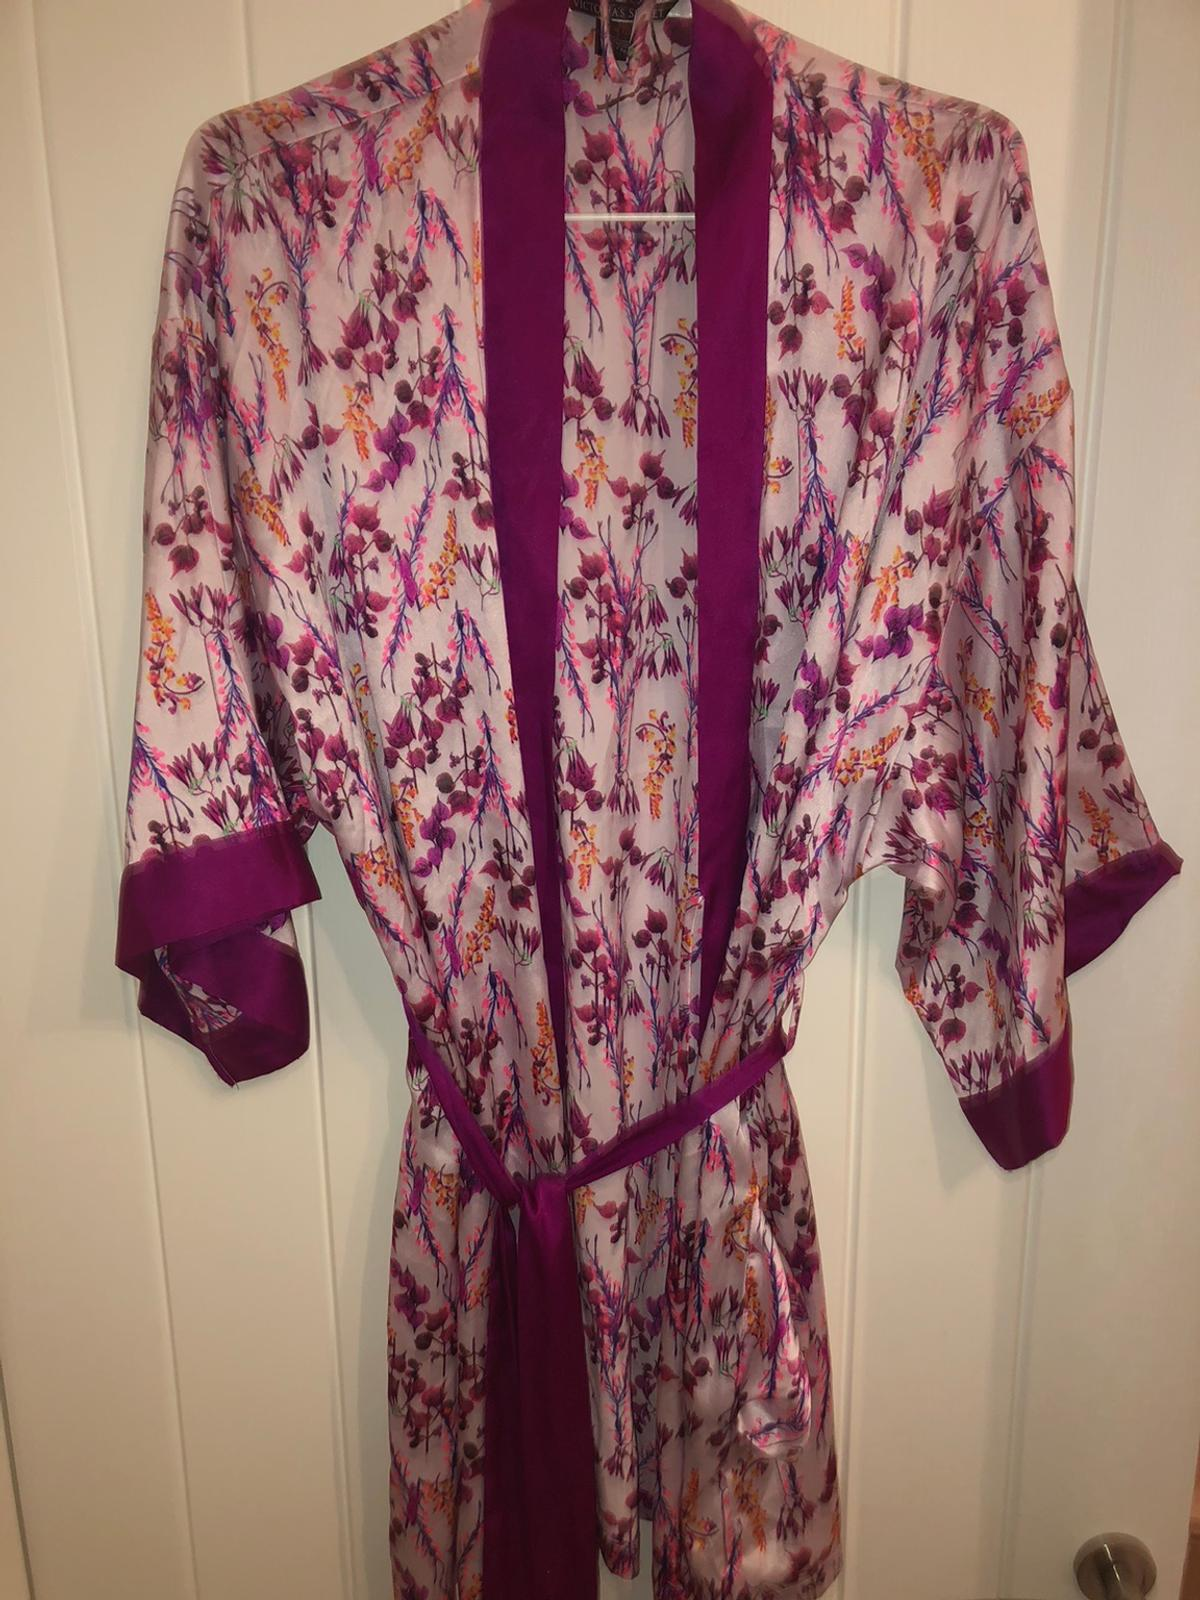 Victoria Secret Robe In S9 Sheffield For 40 00 For Sale Shpock